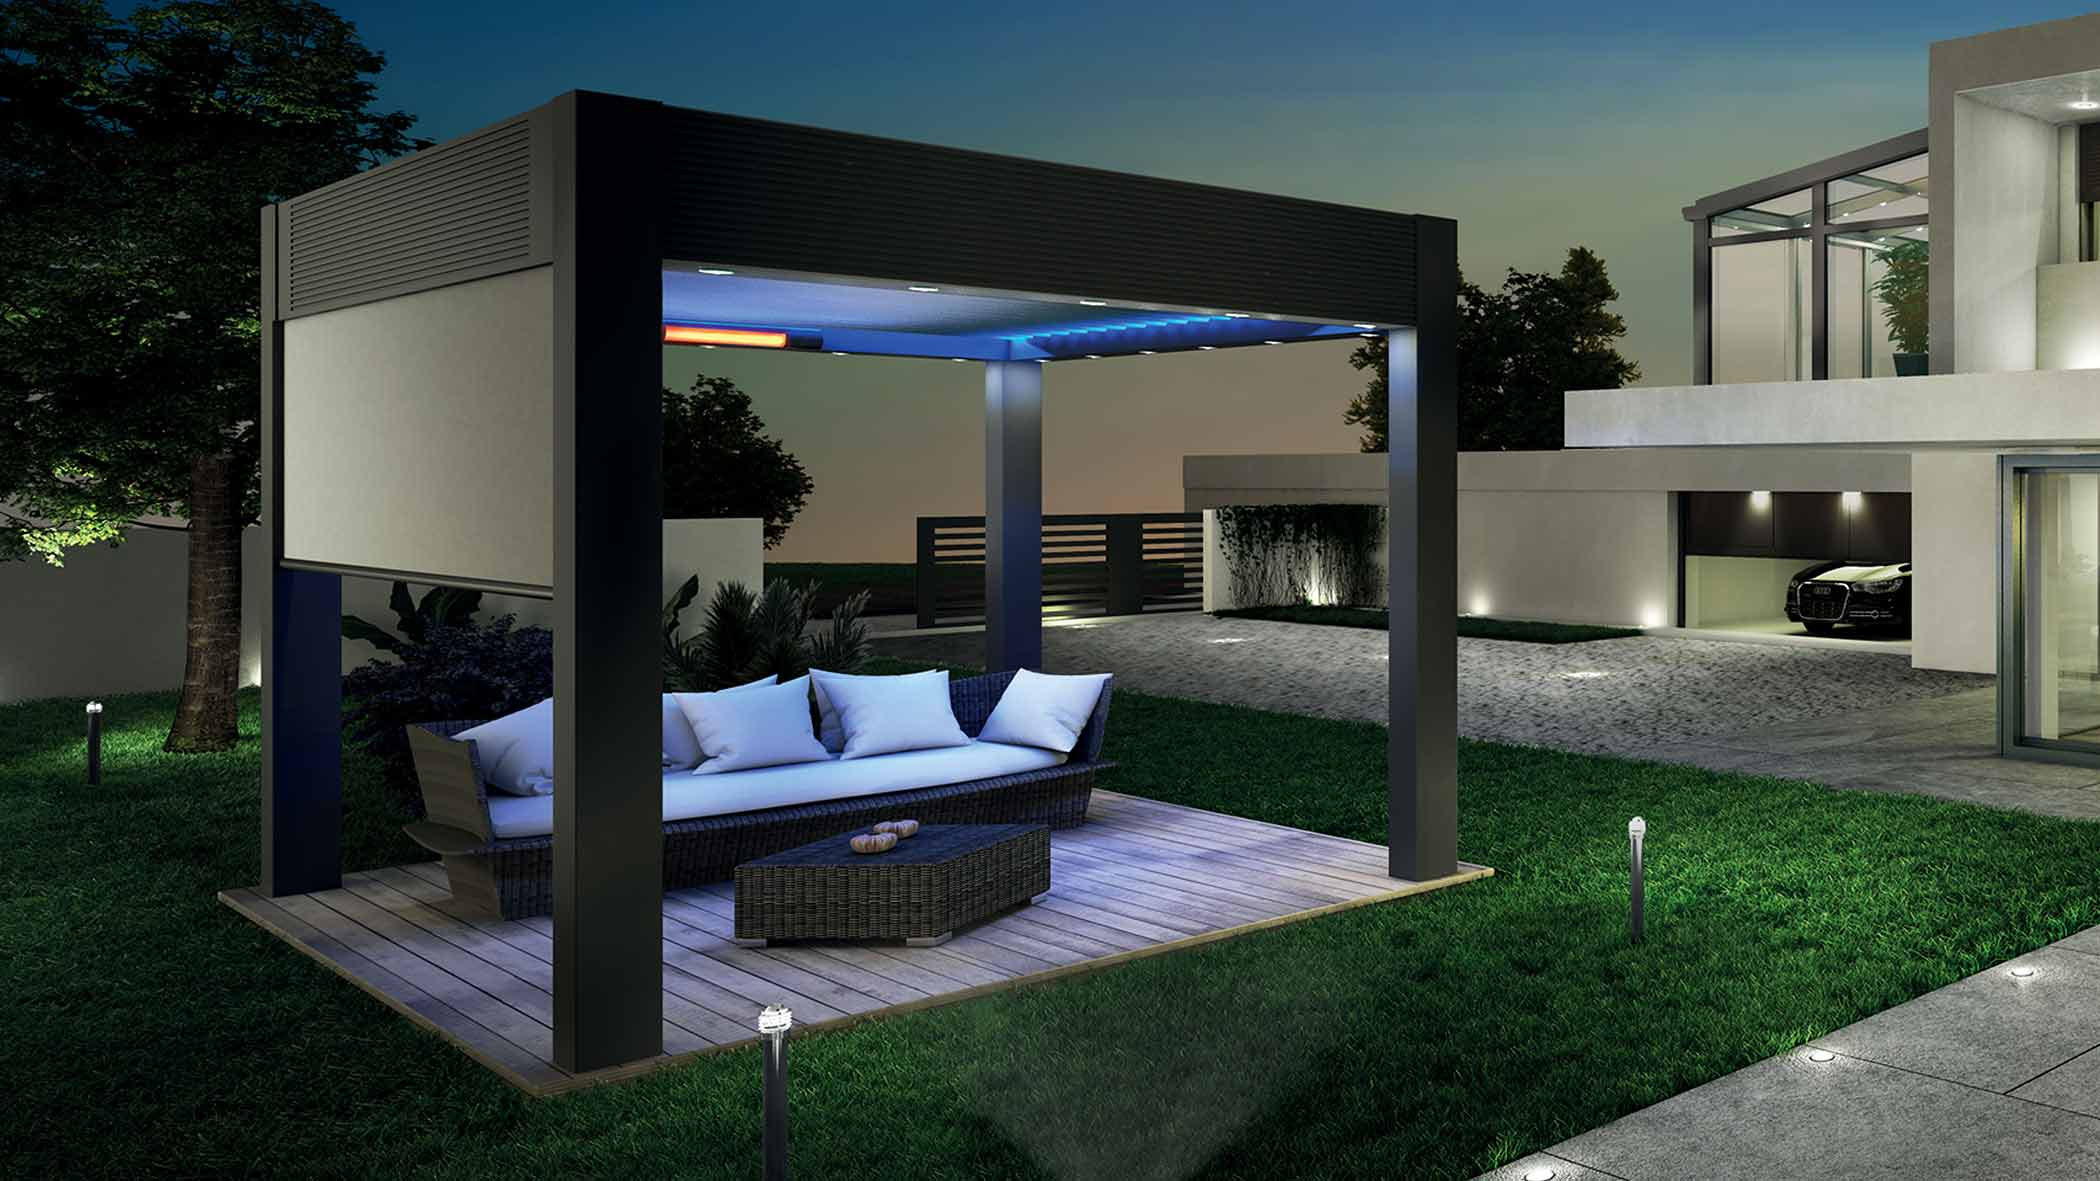 Why Do People Love To Add Pergolas in Adelaide At Their House Outdoor Area?